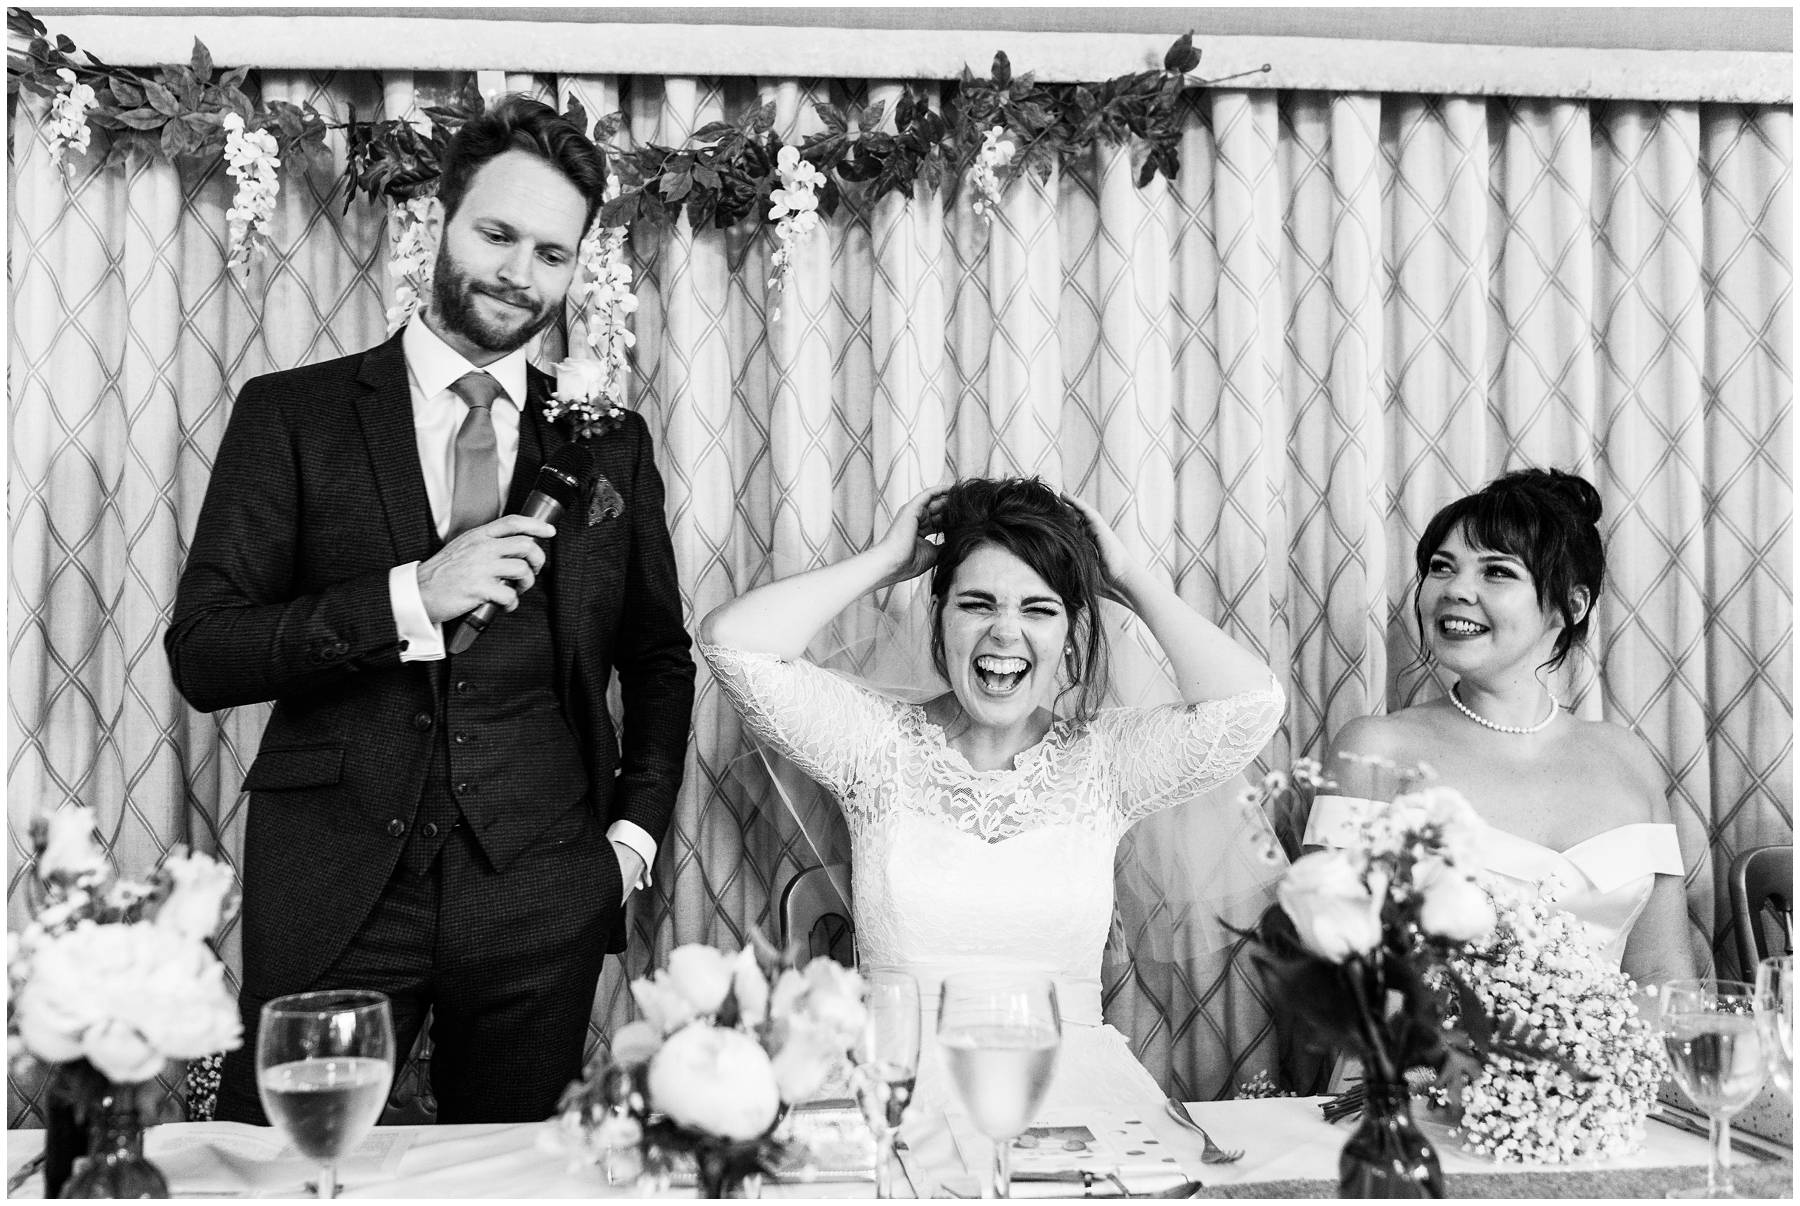 East of England Wedding Photographer of the Year